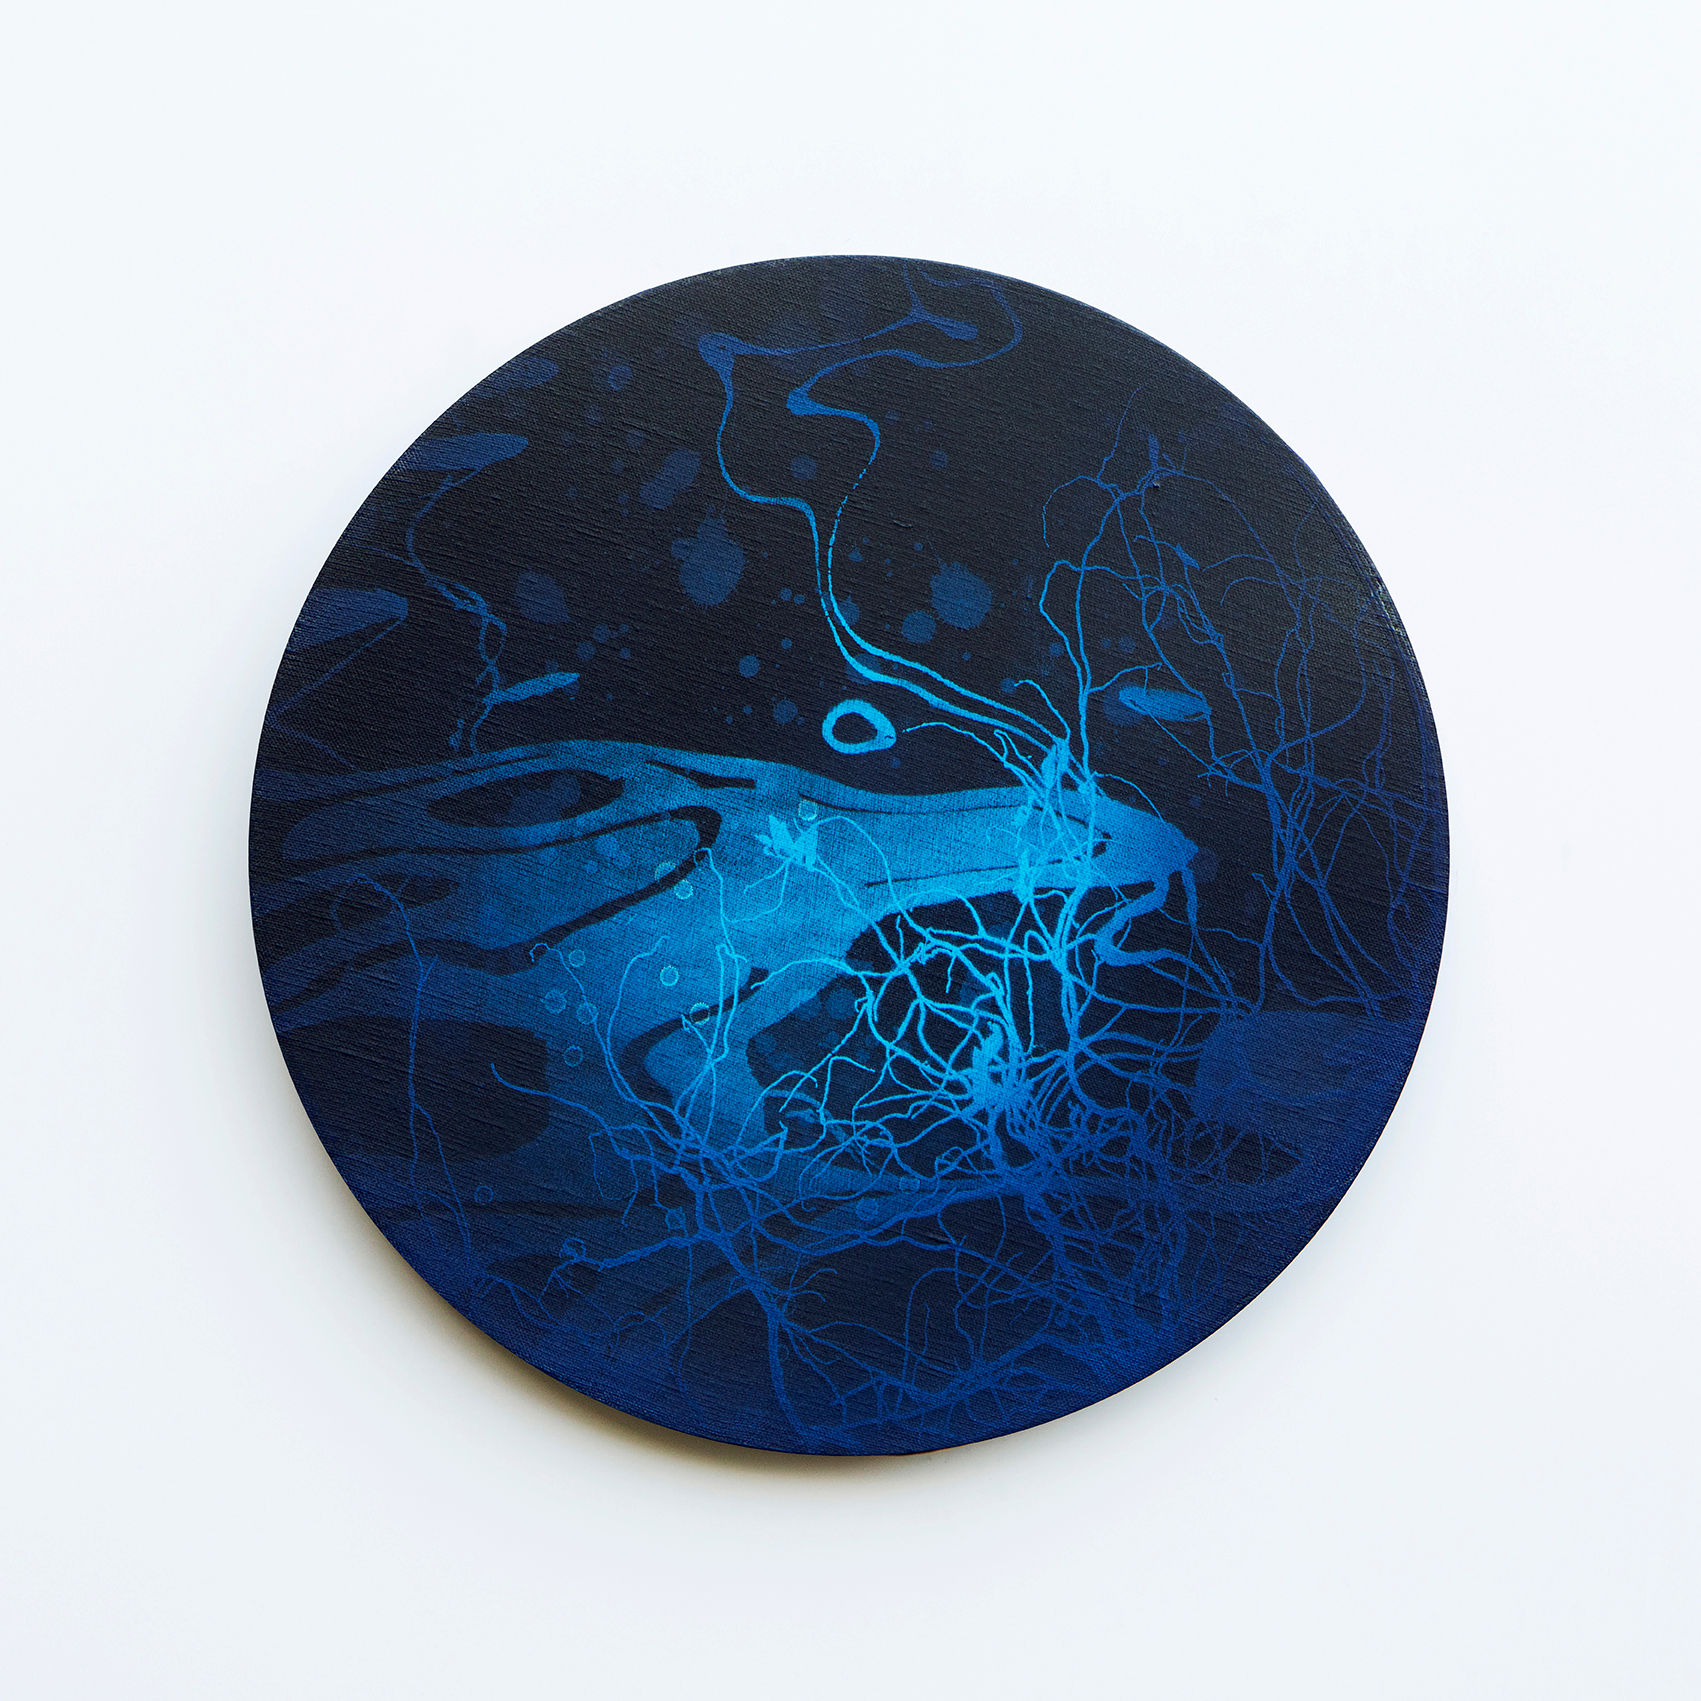 WATERSCAPE_내 안의 바깥 07, Diameter 40cm, Traditional pigment, water-print, water-drawing on canvas, 2018